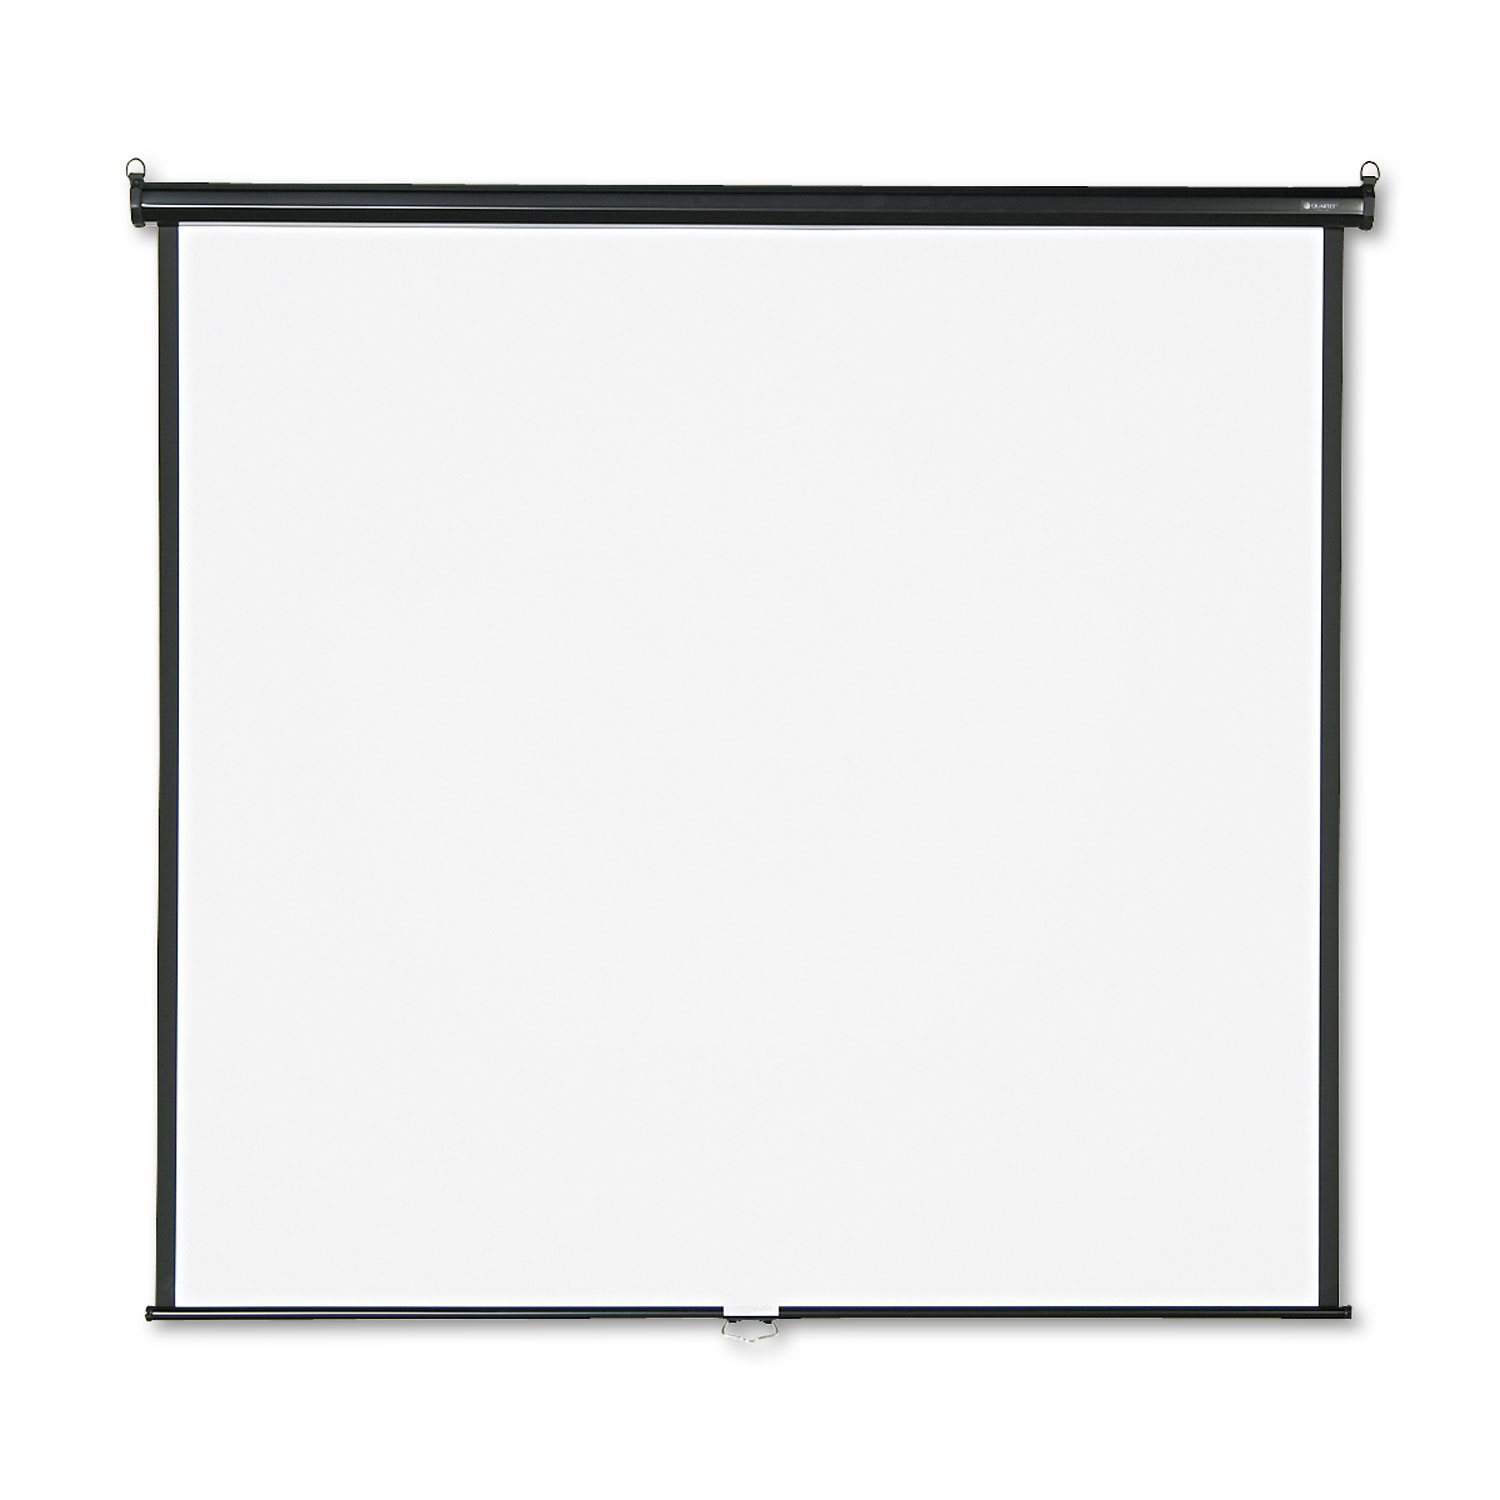 Picture of Wall or Ceiling Projection Screen, 70 x 70, White Matte, Black Matte Casing